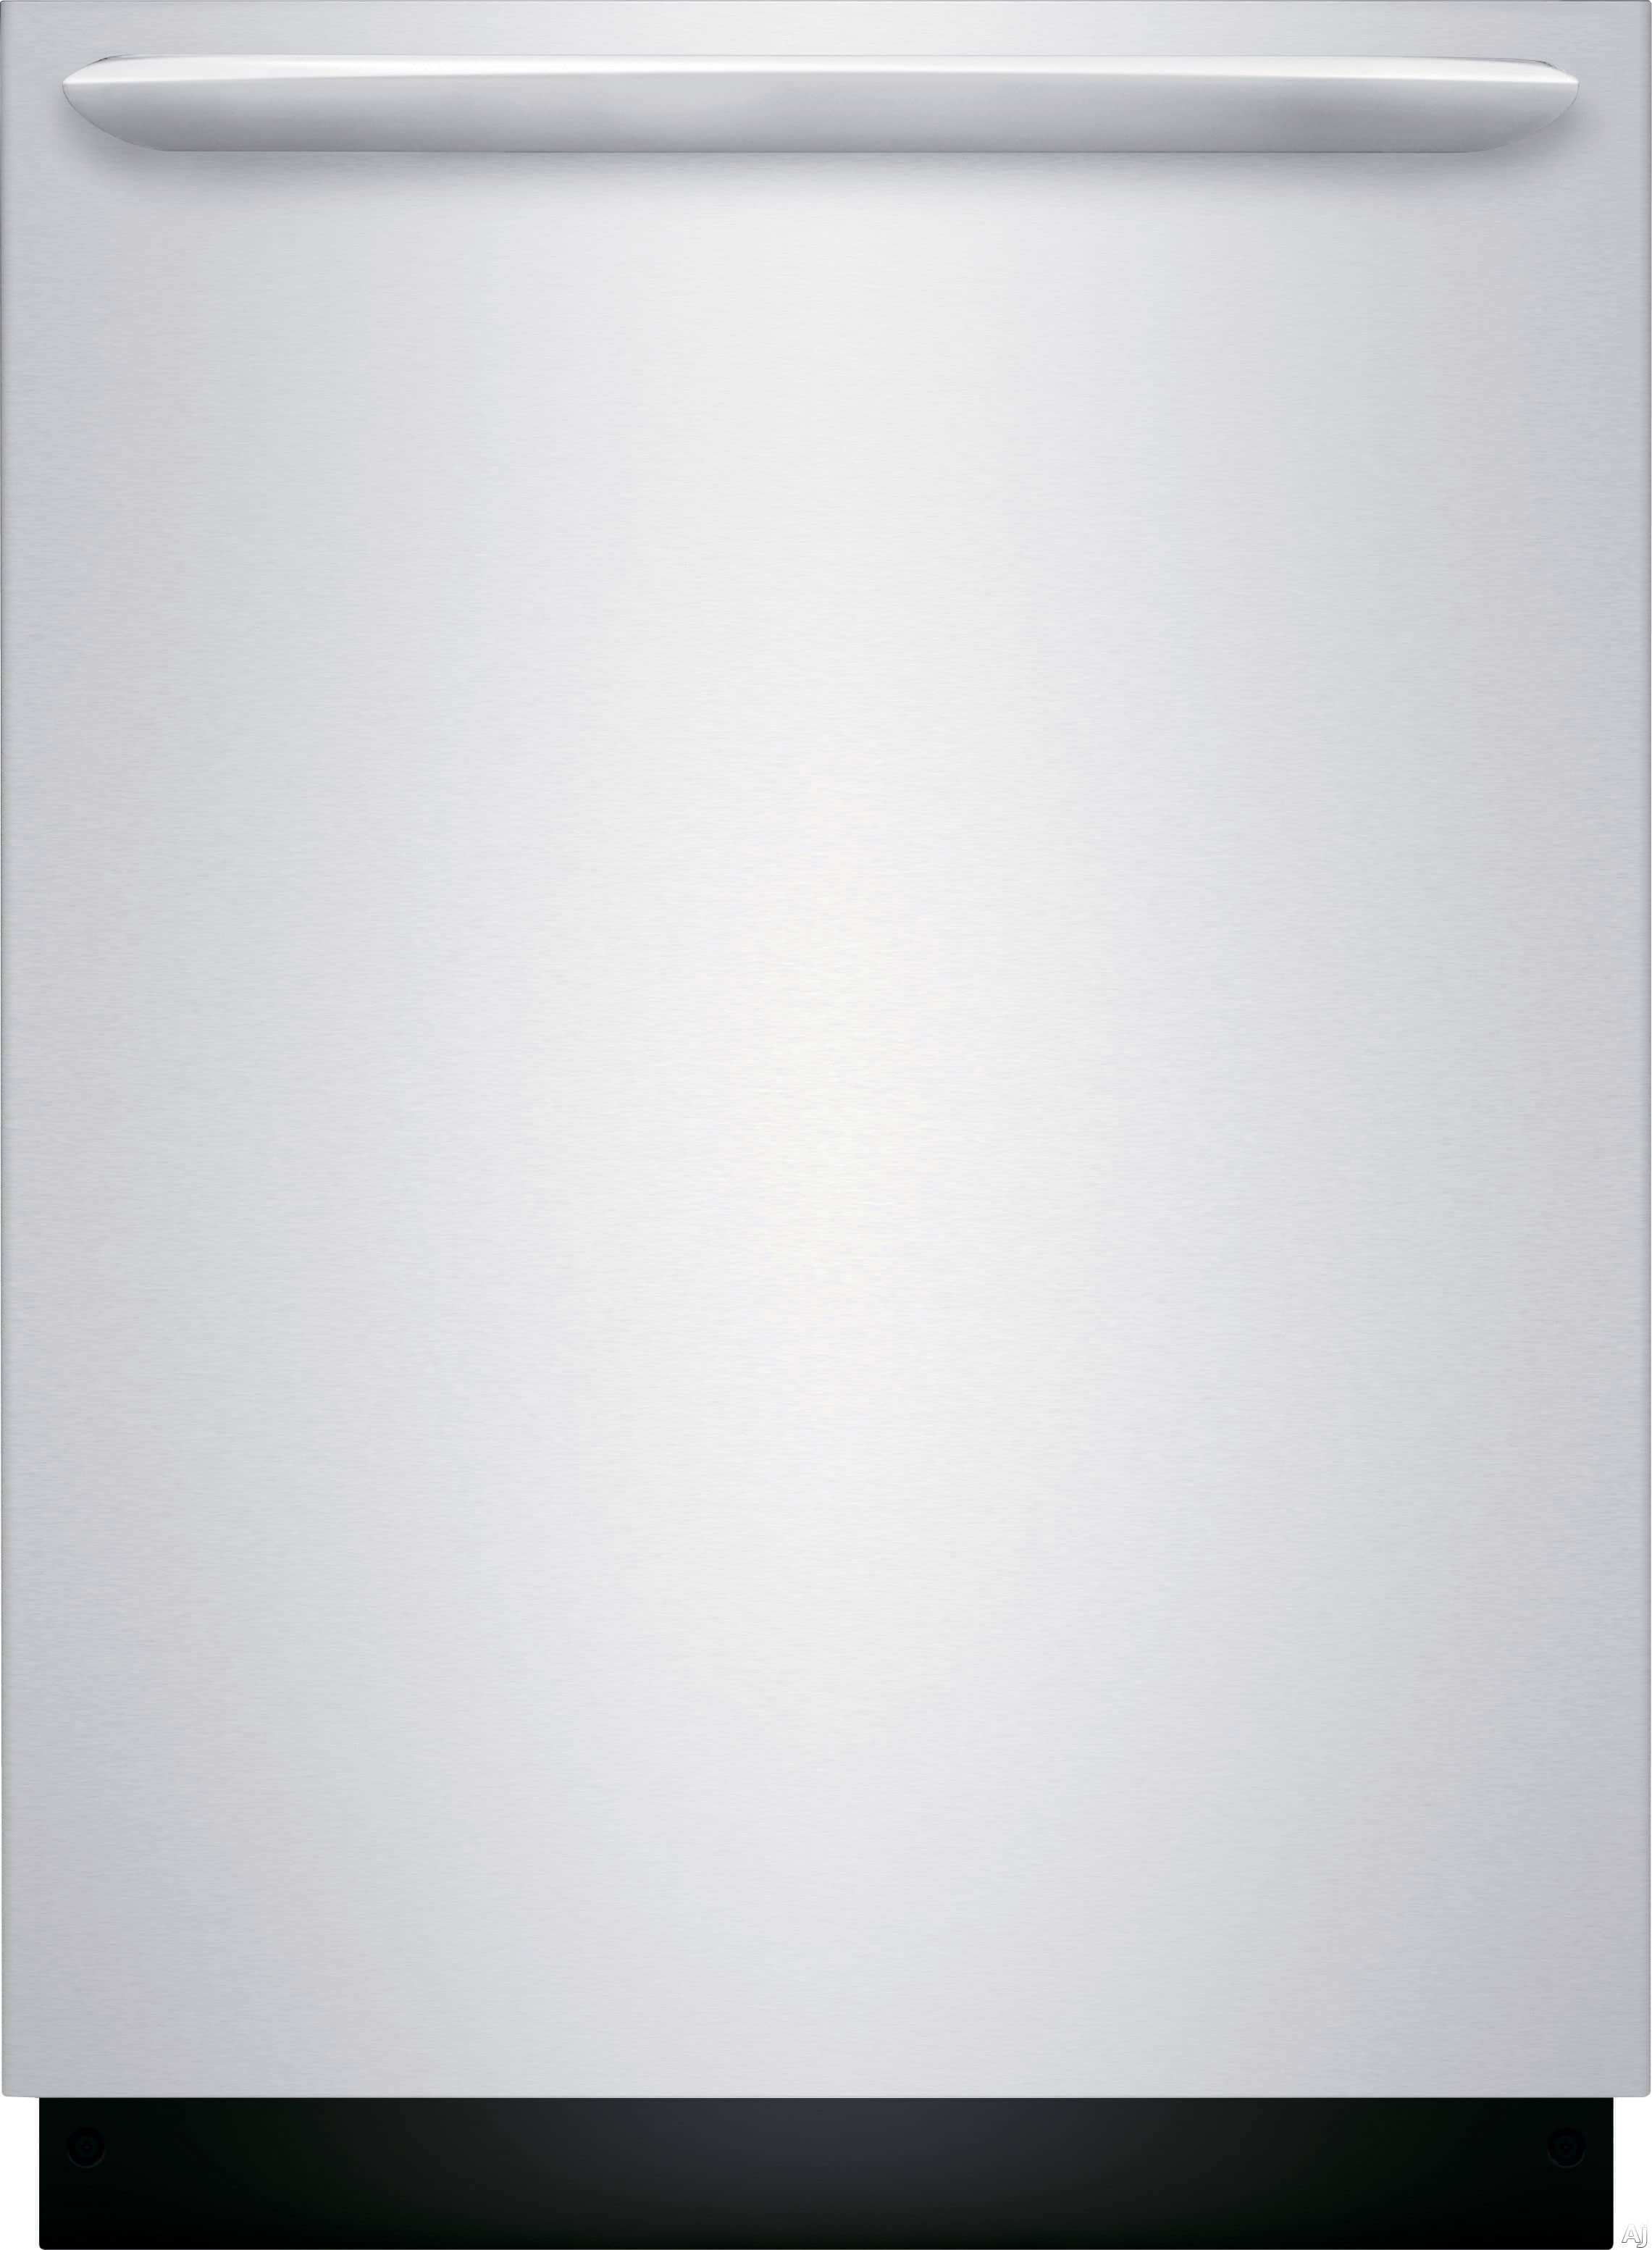 Frigidaire Gallery Series FGID2474QF Stainless Steel Dishwasher